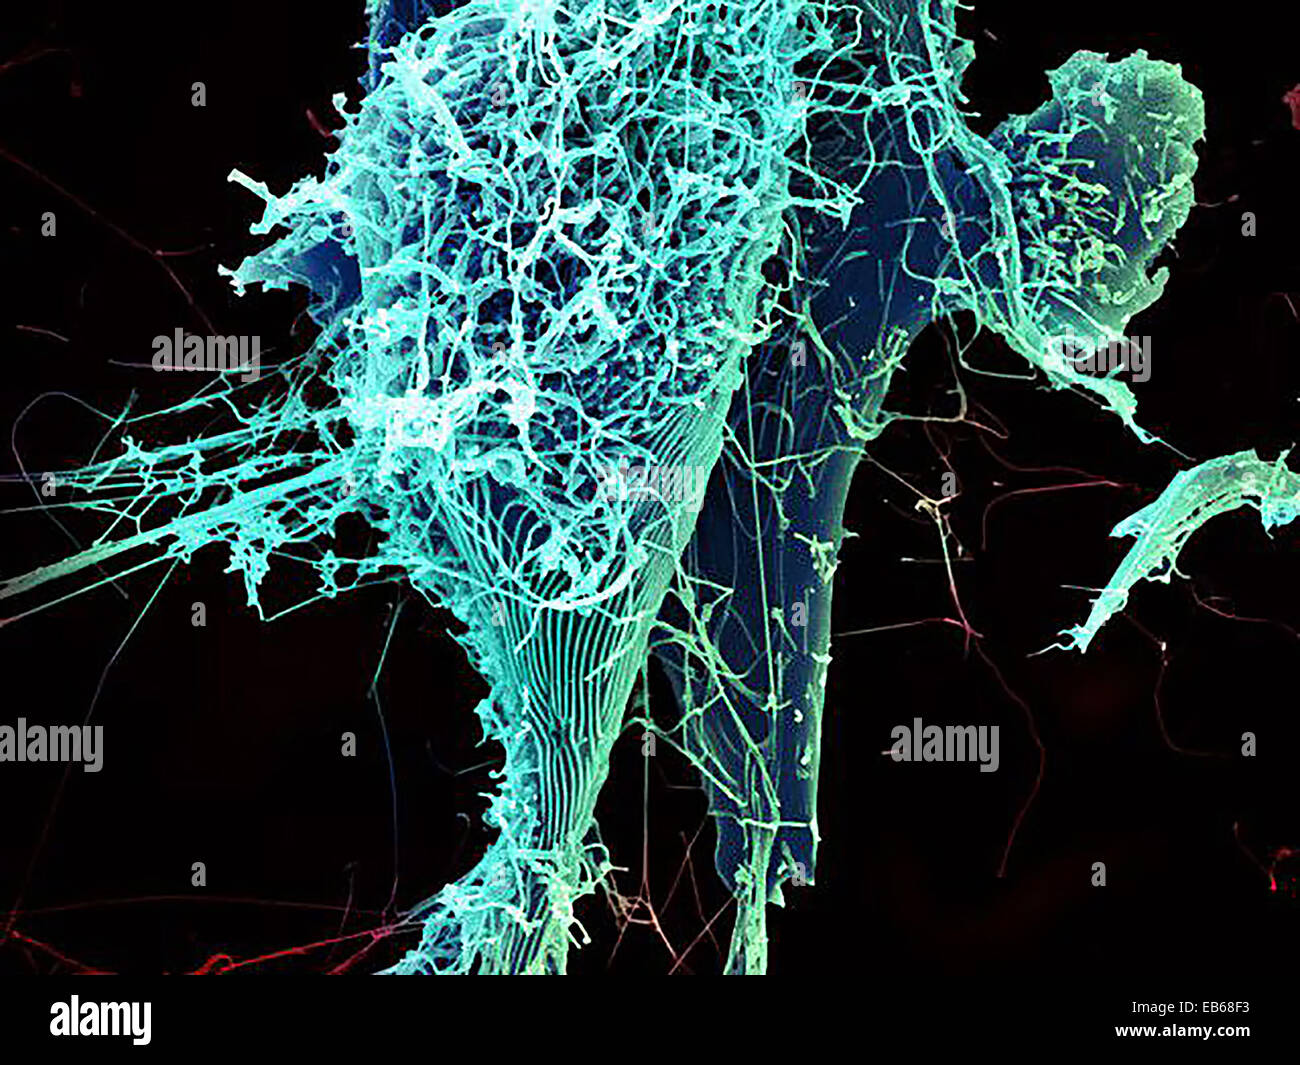 Ebola Virus Particles - Stock Image